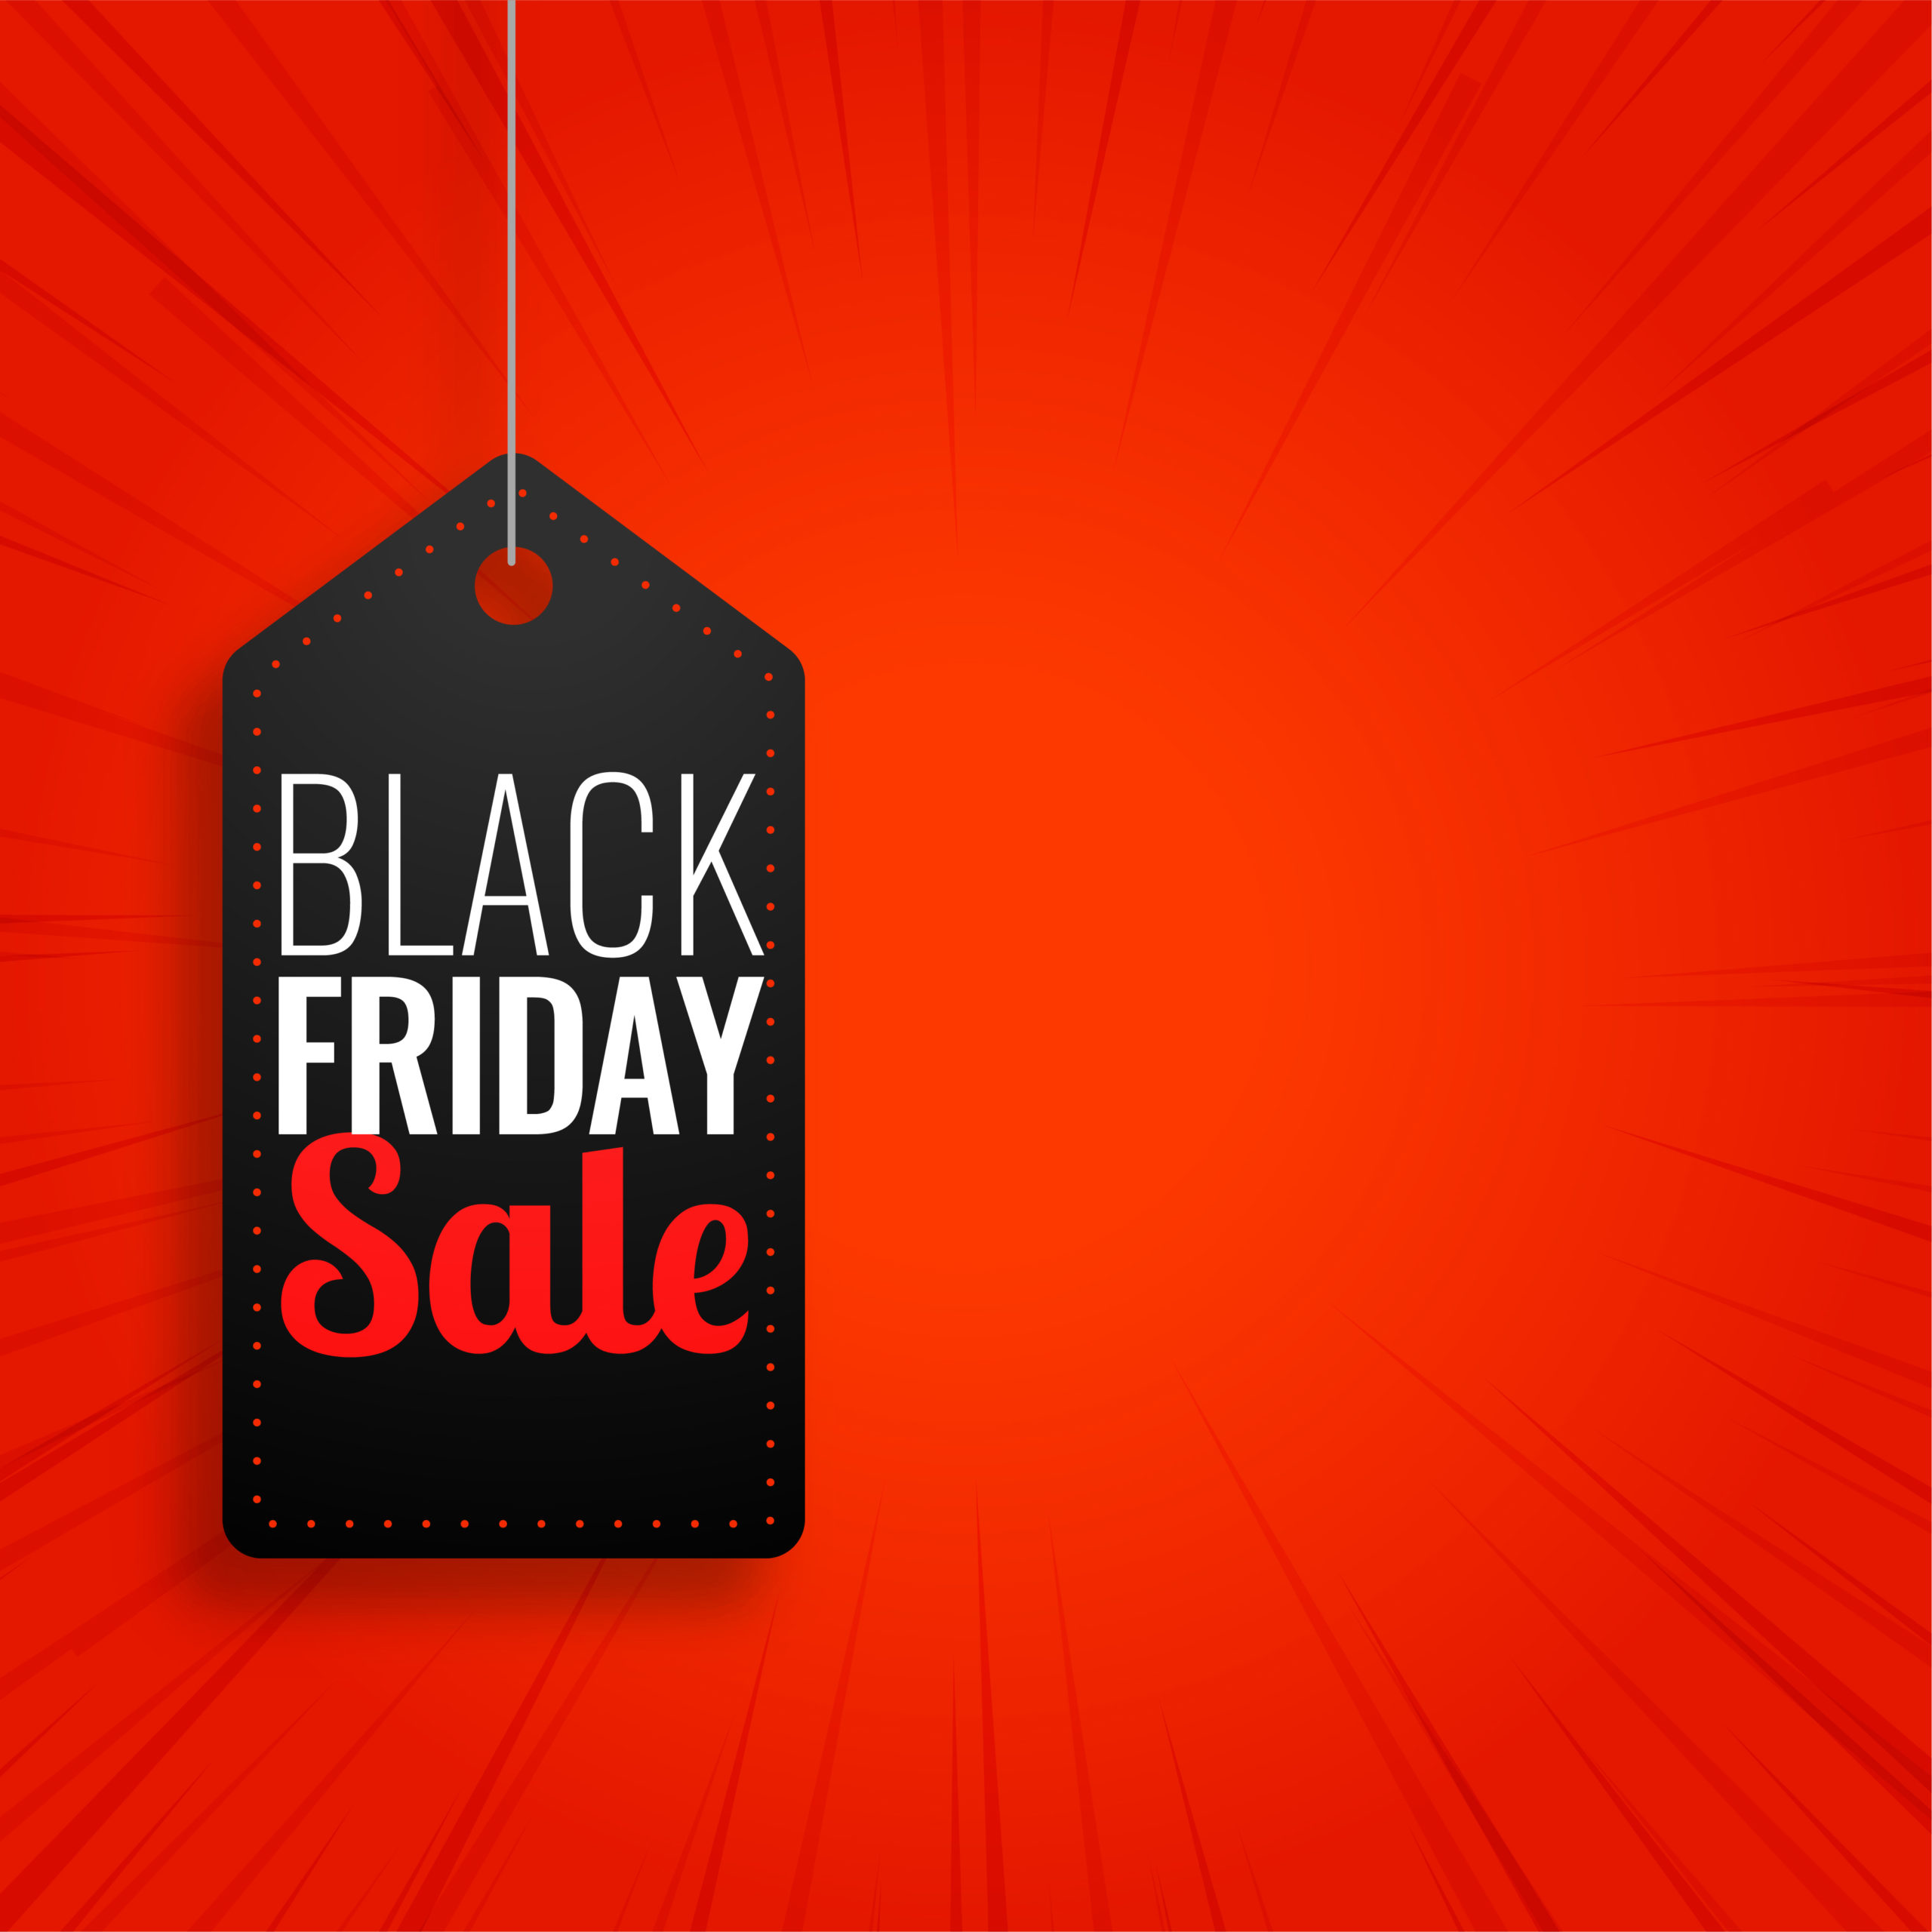 Black friday sale hanging tag on red background